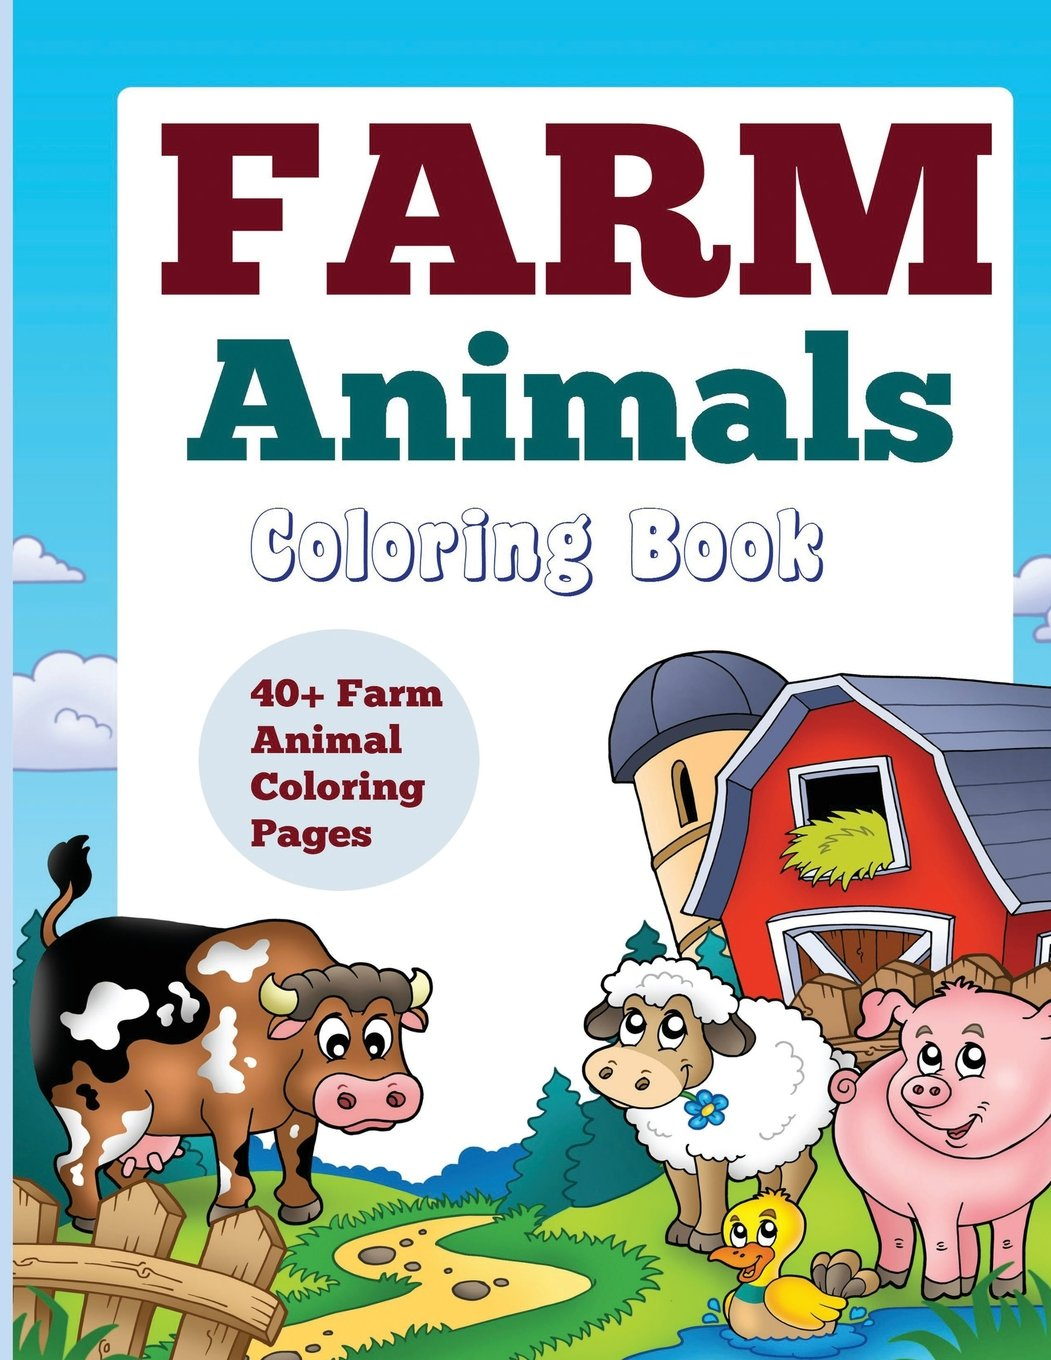 Farm Animals Coloring Book 40 Farm Animal Coloring Pages Kids